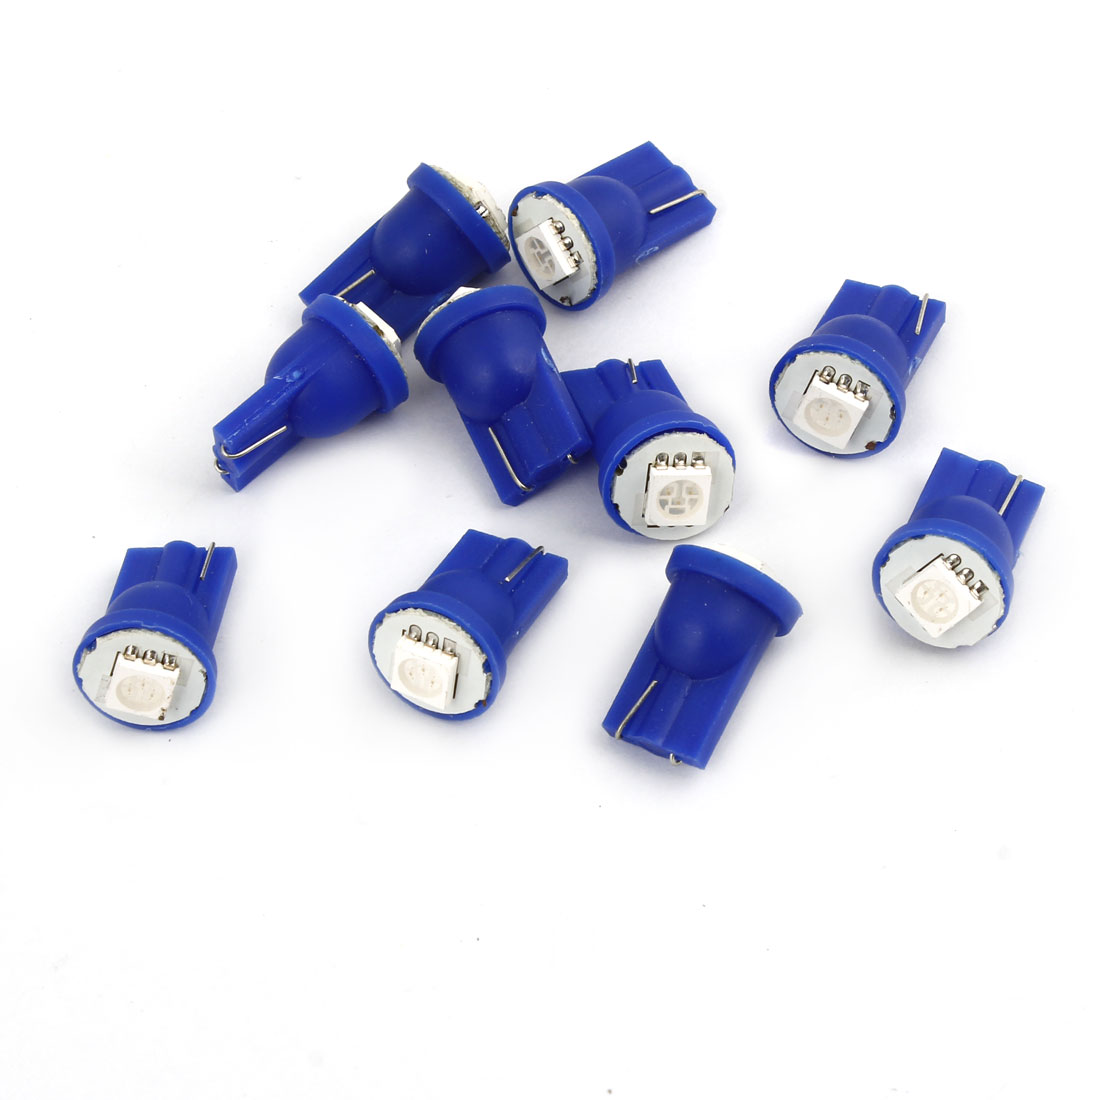 10 Pcs T10 Wedge Blue 5050 SMD LED 12V Indicator Lamp Light Bulbs for Car Internal